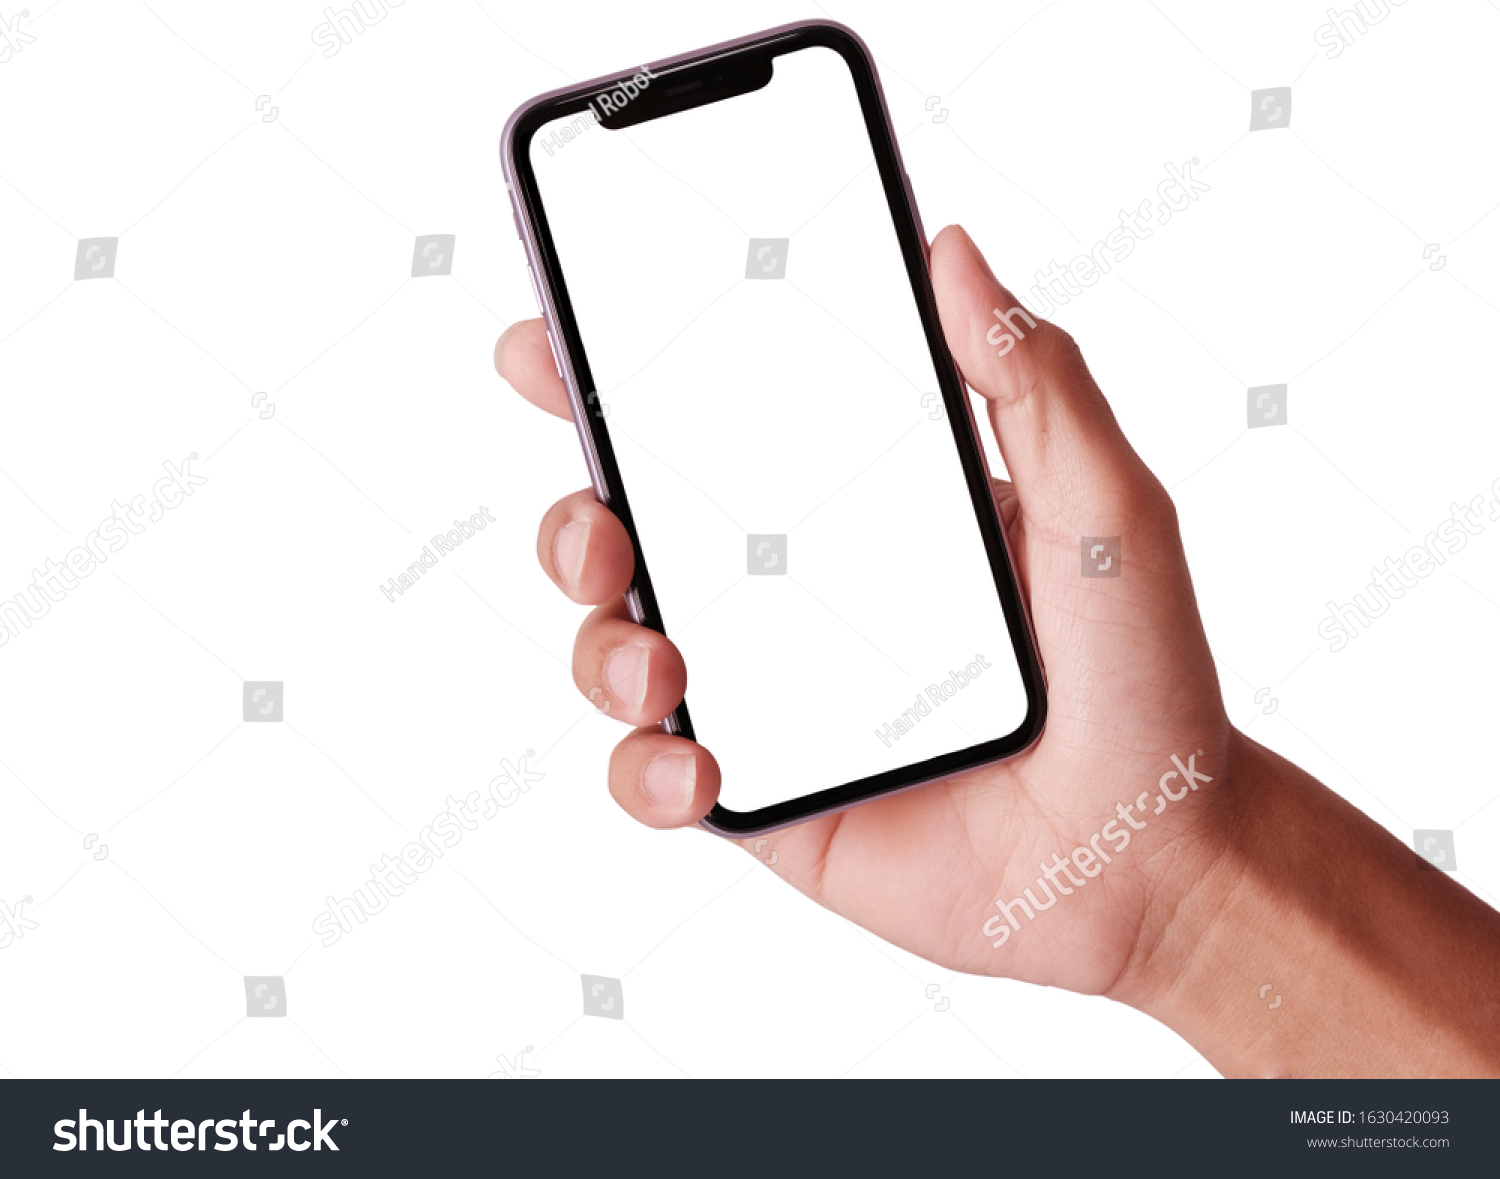 Bangkok, Thailand - JAN 20, 2019: Studio shot of Hand holding Smartphone iPhone 11 Pro Max and Show space white screen for mobile Phone your web site design, logo, app - include clipping path. #1630420093